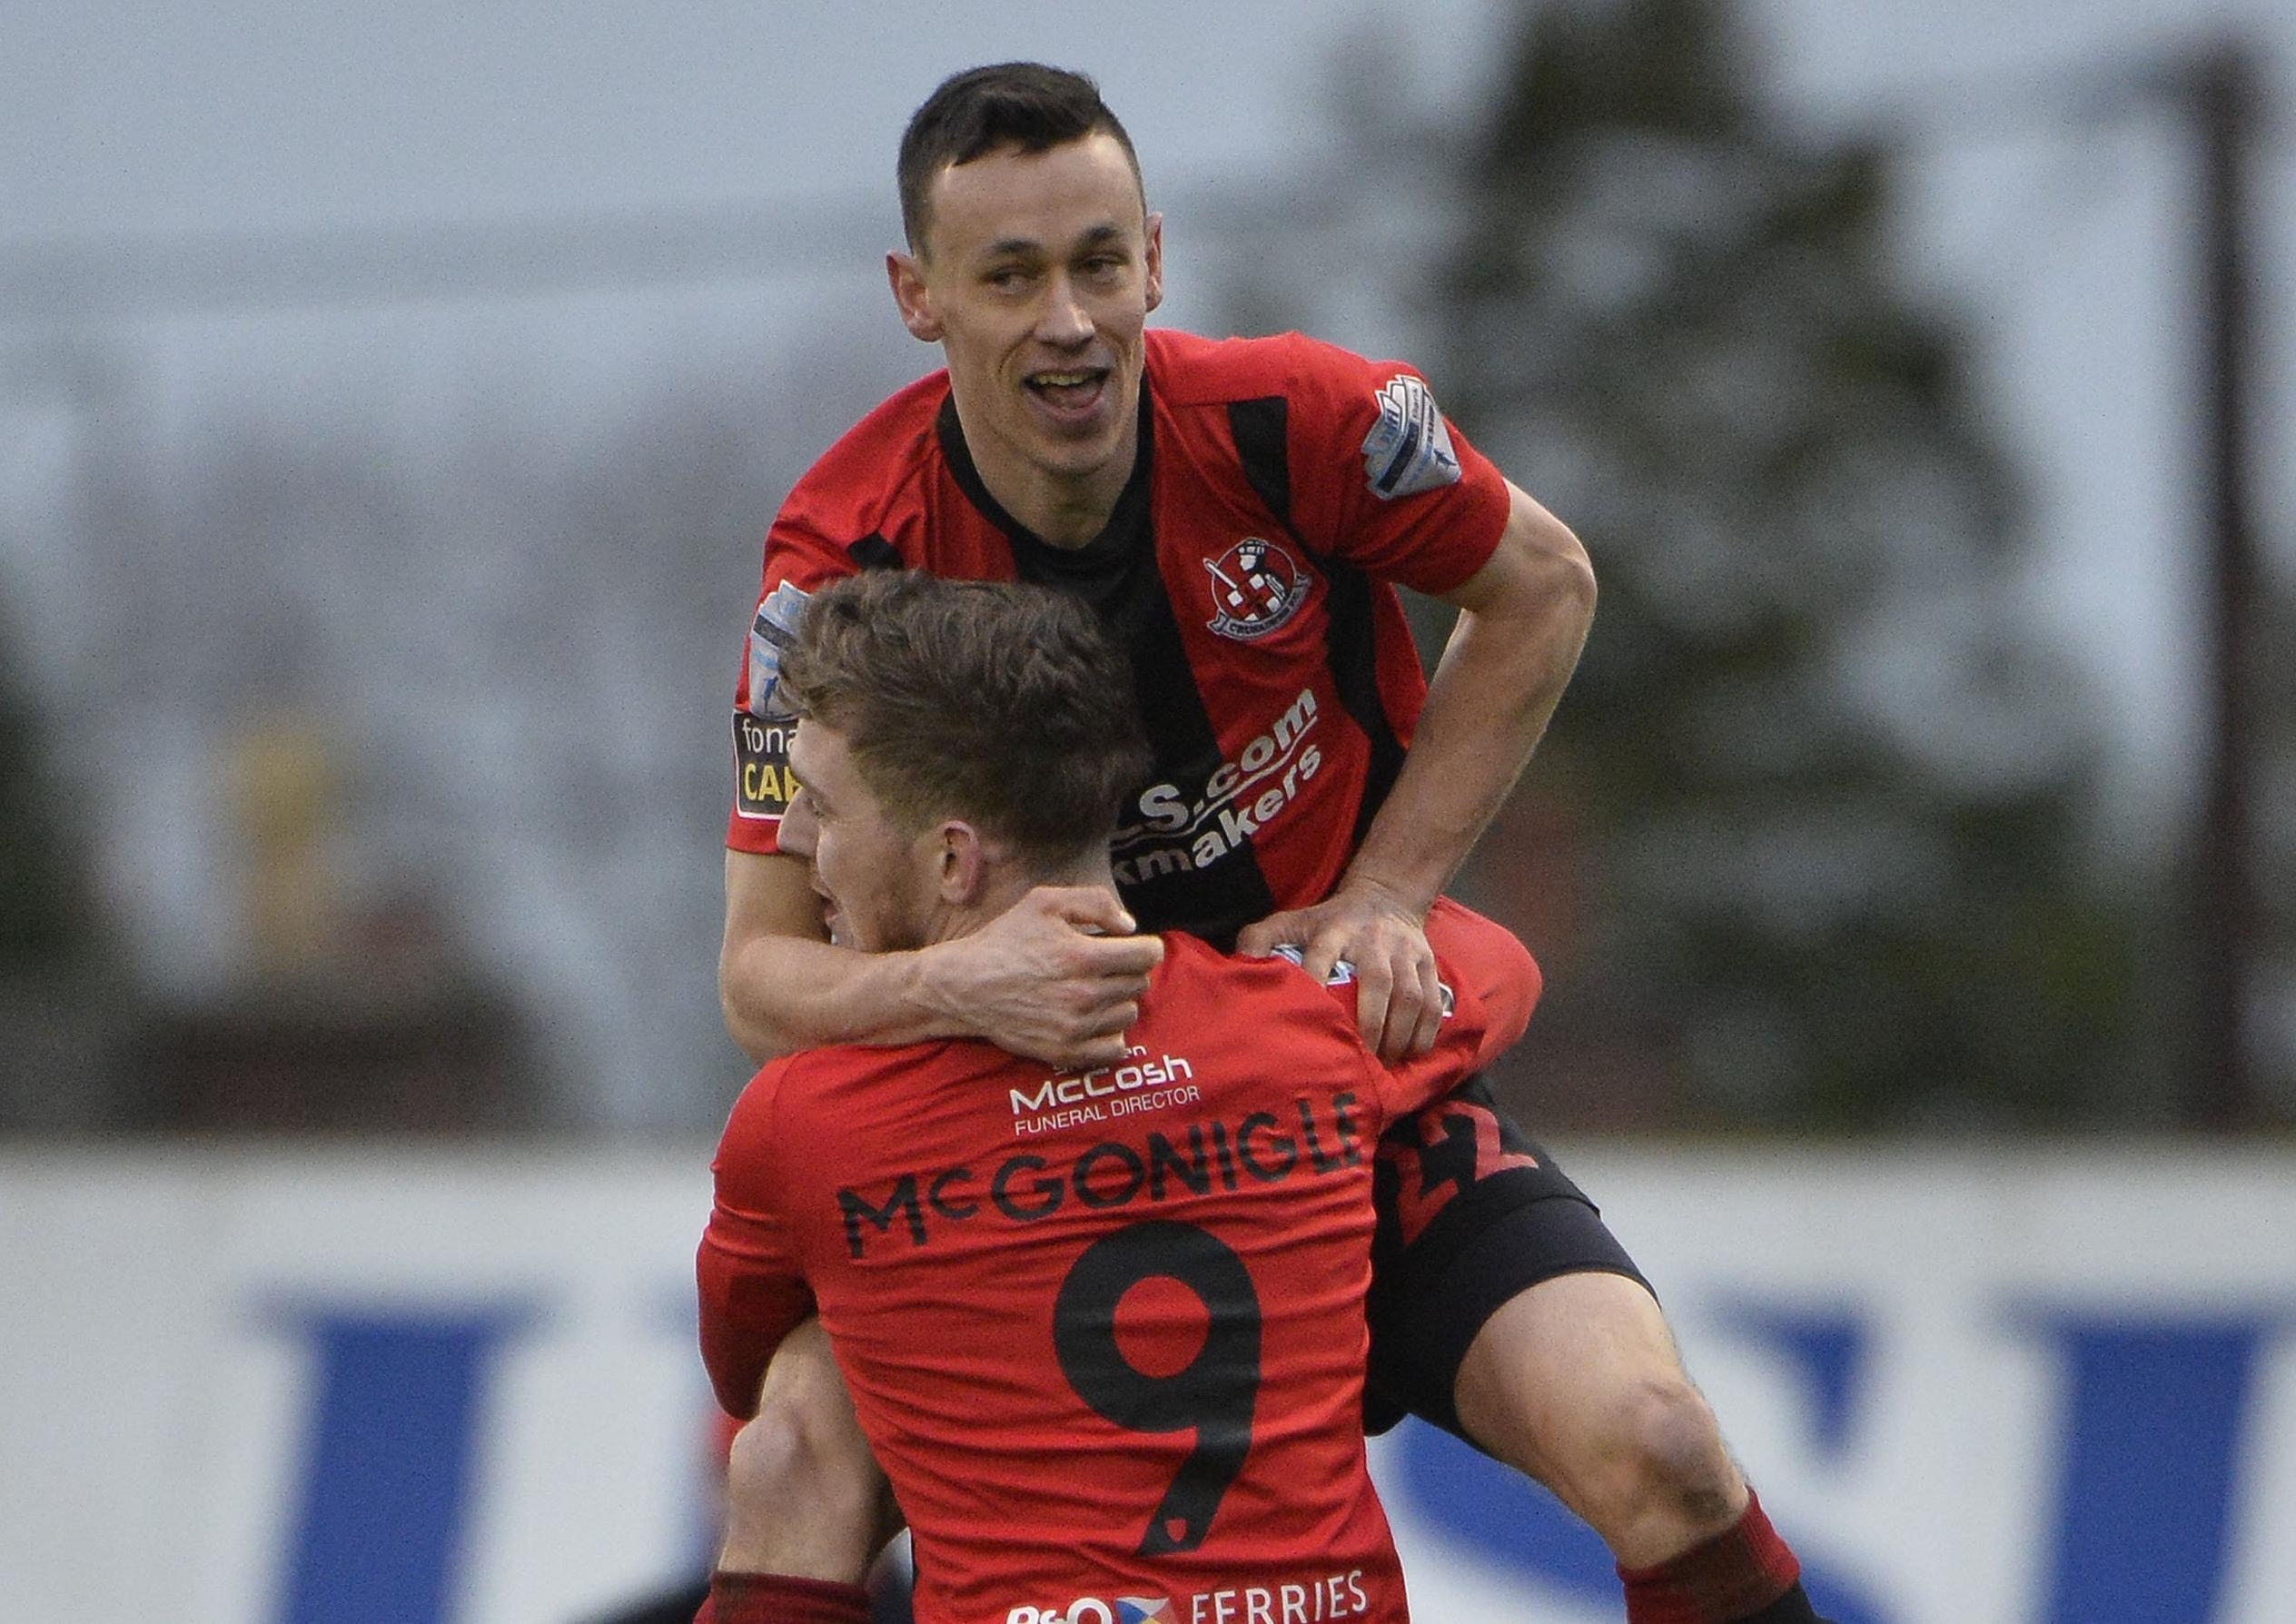 Weather woe key for Stephen Baxter as Crusaders lose the lead in Lurgan